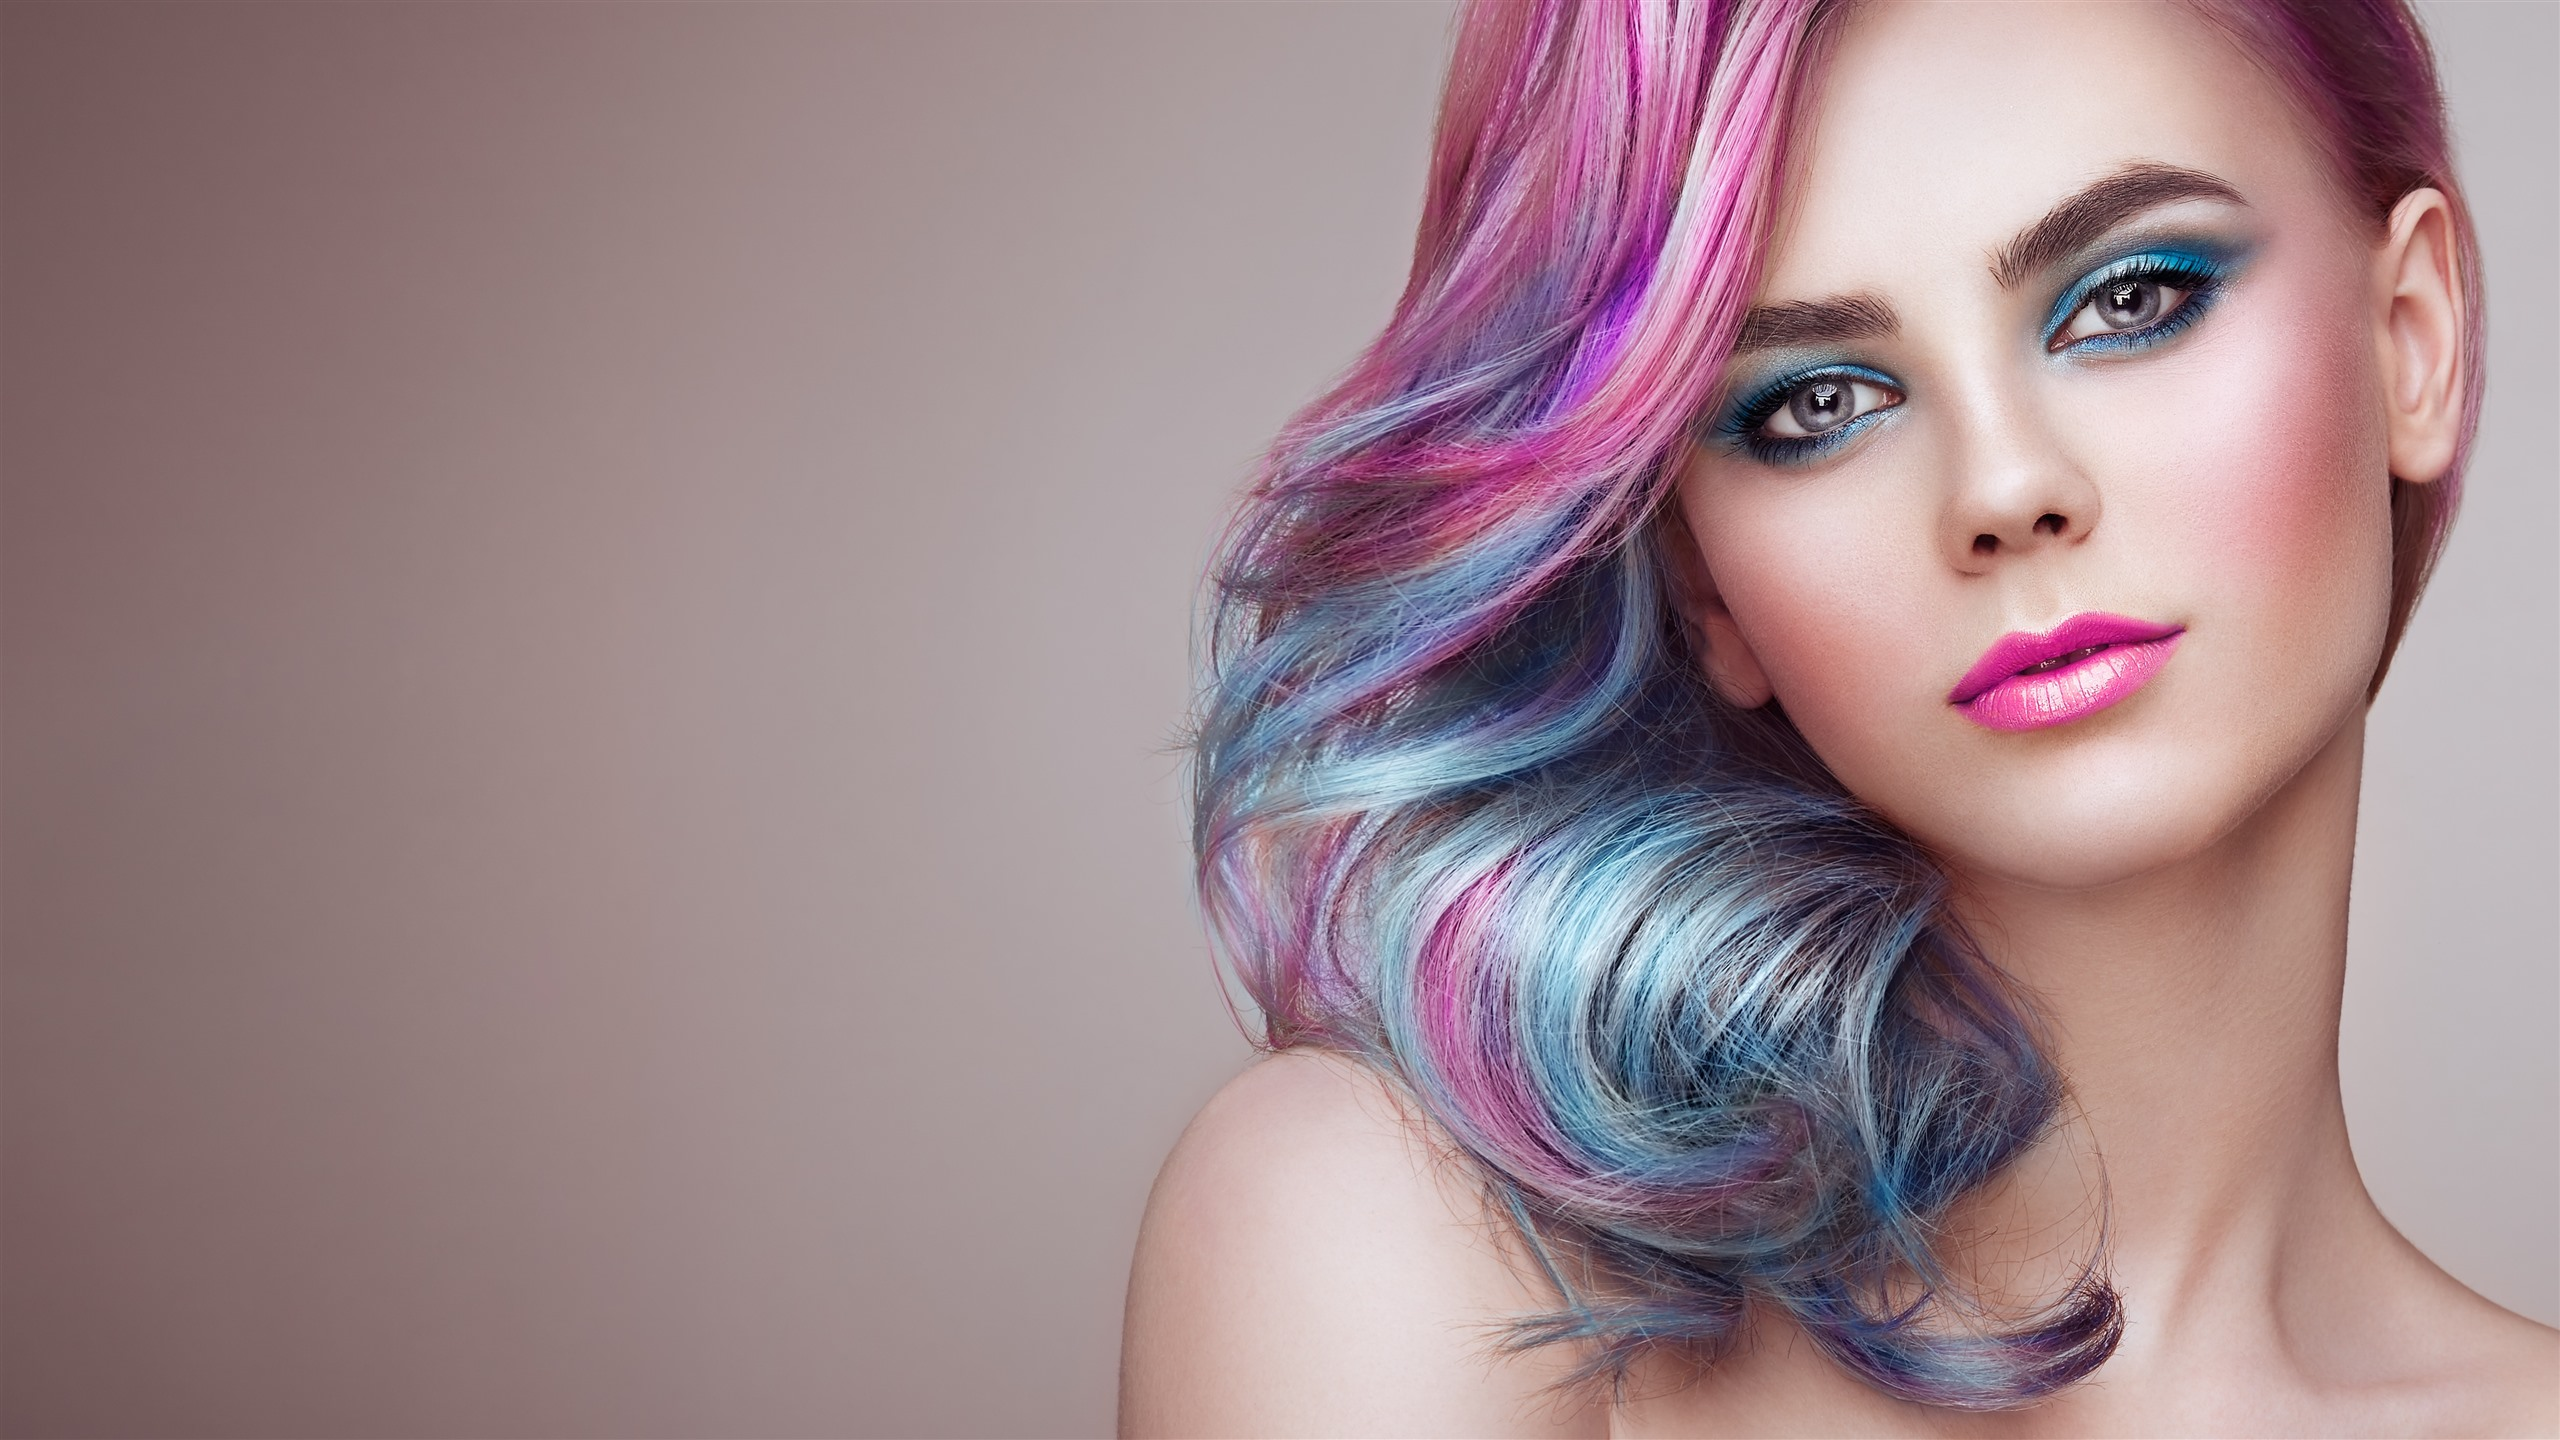 Beautiful Fashion Girl Hairstyle Pink Hairs Face Makeup 1242x2688 Iphone 11 Pro Xs Max Wallpaper Background Picture Image